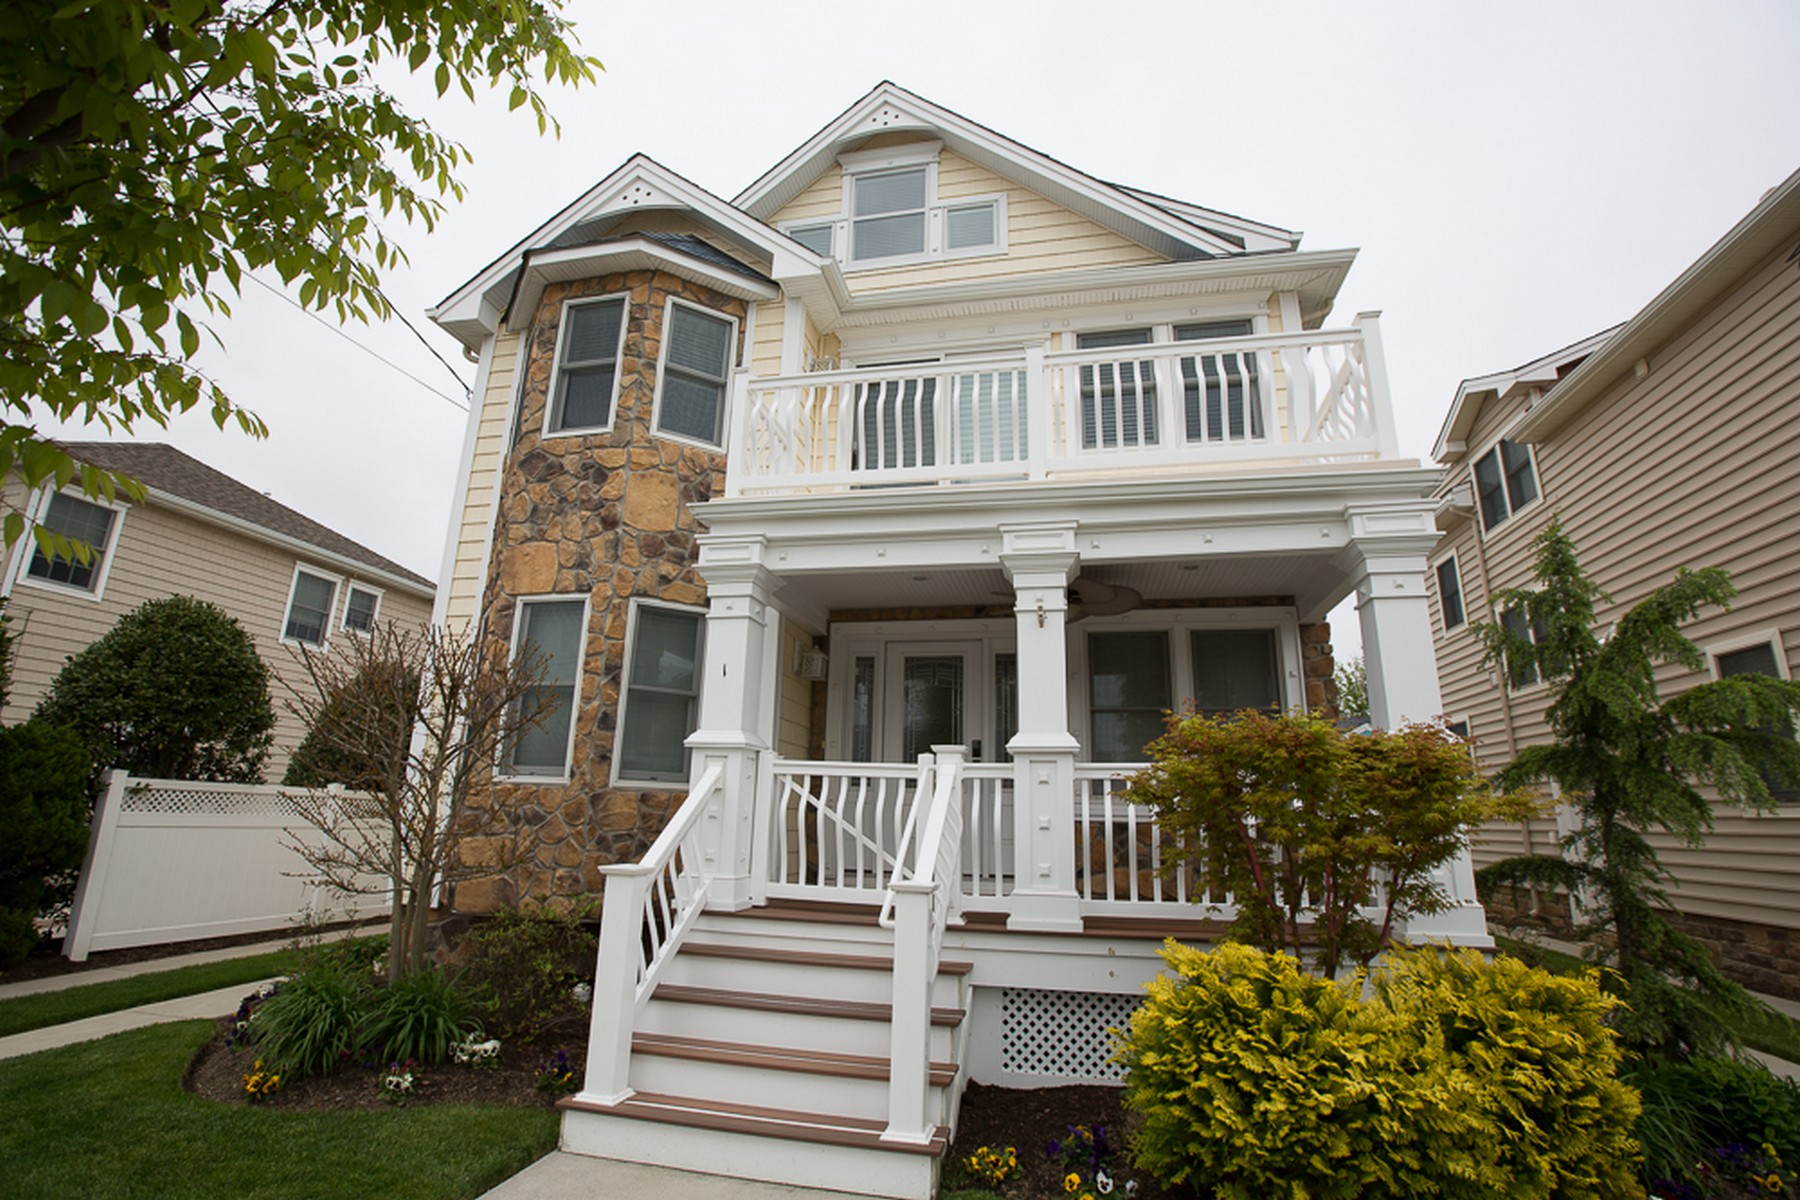 Single Family Home for Sale at Downbeach 1 N Clermont, Margate, New Jersey, 08402 United States